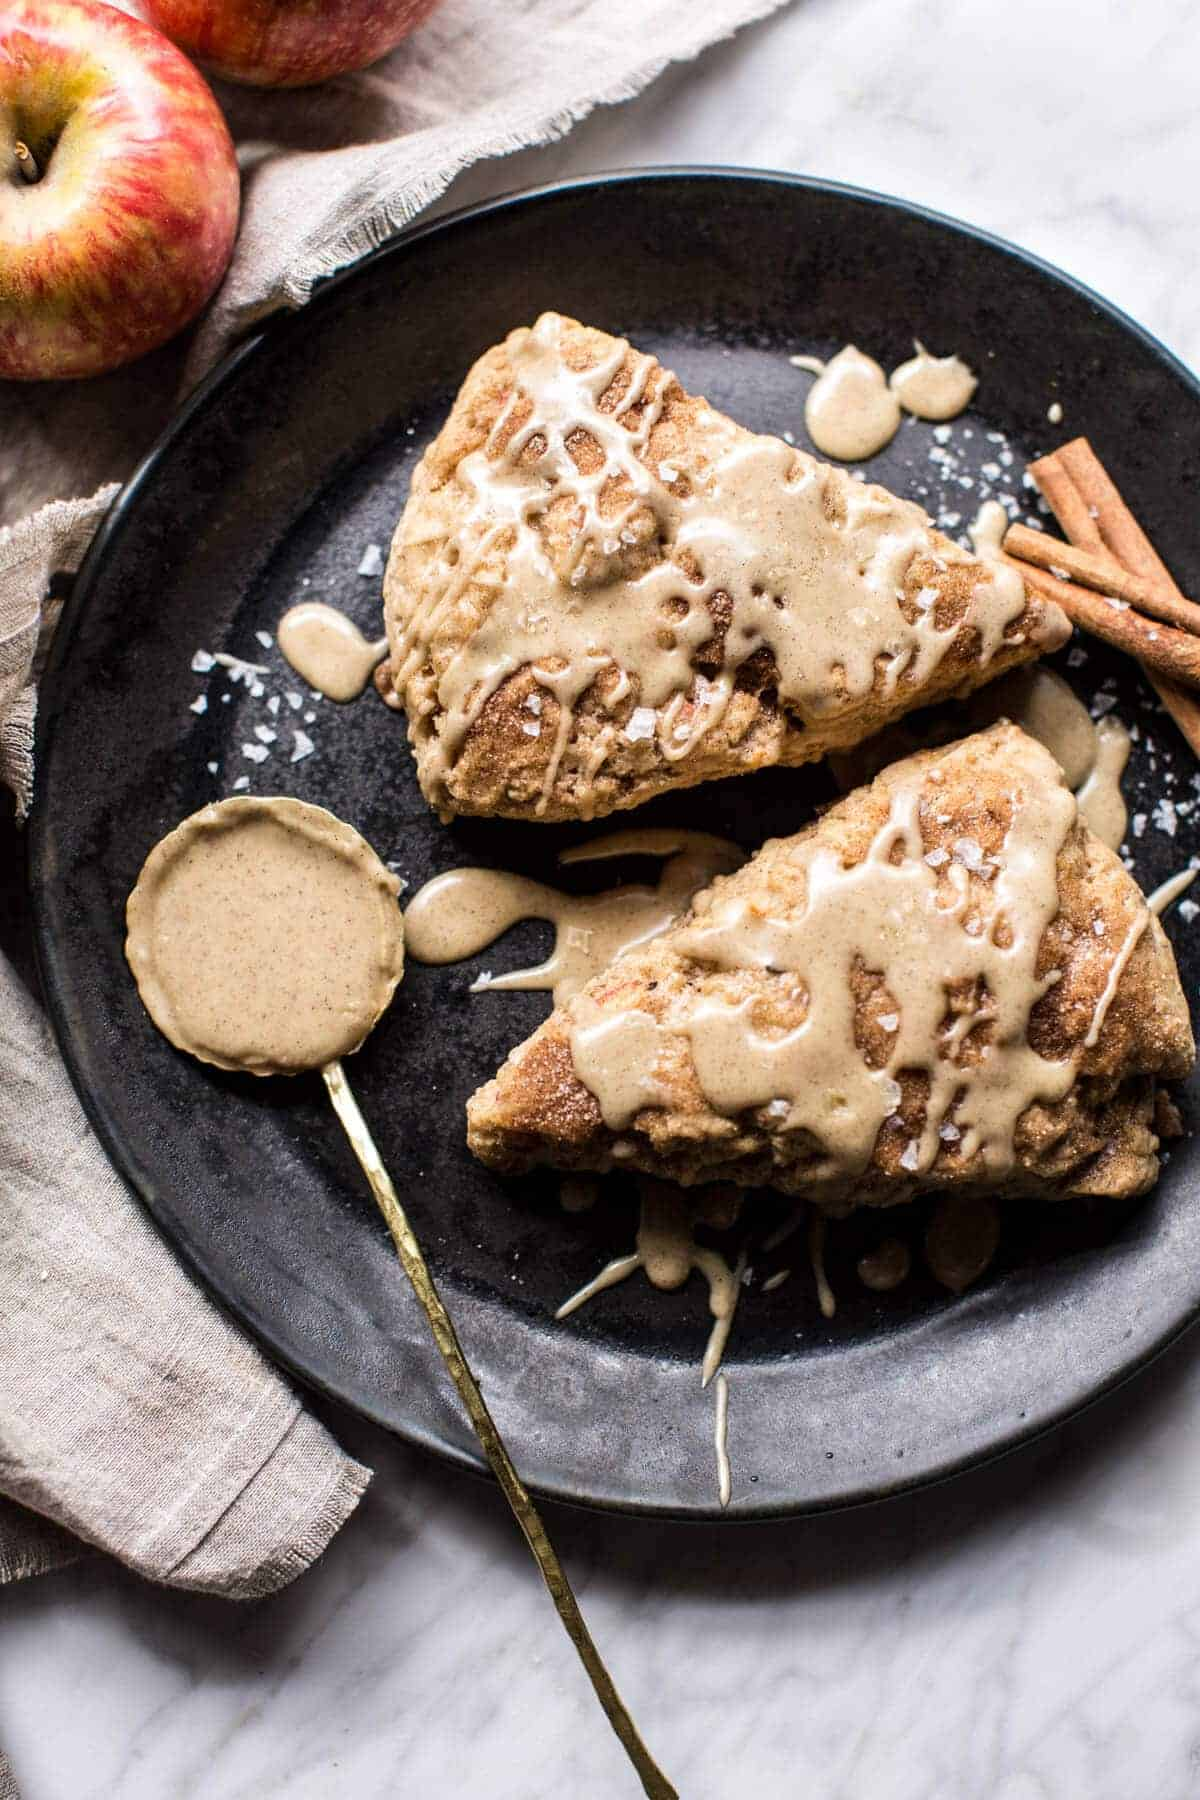 Brown Butter Maple Glazed Cinnamon Apple Scones.